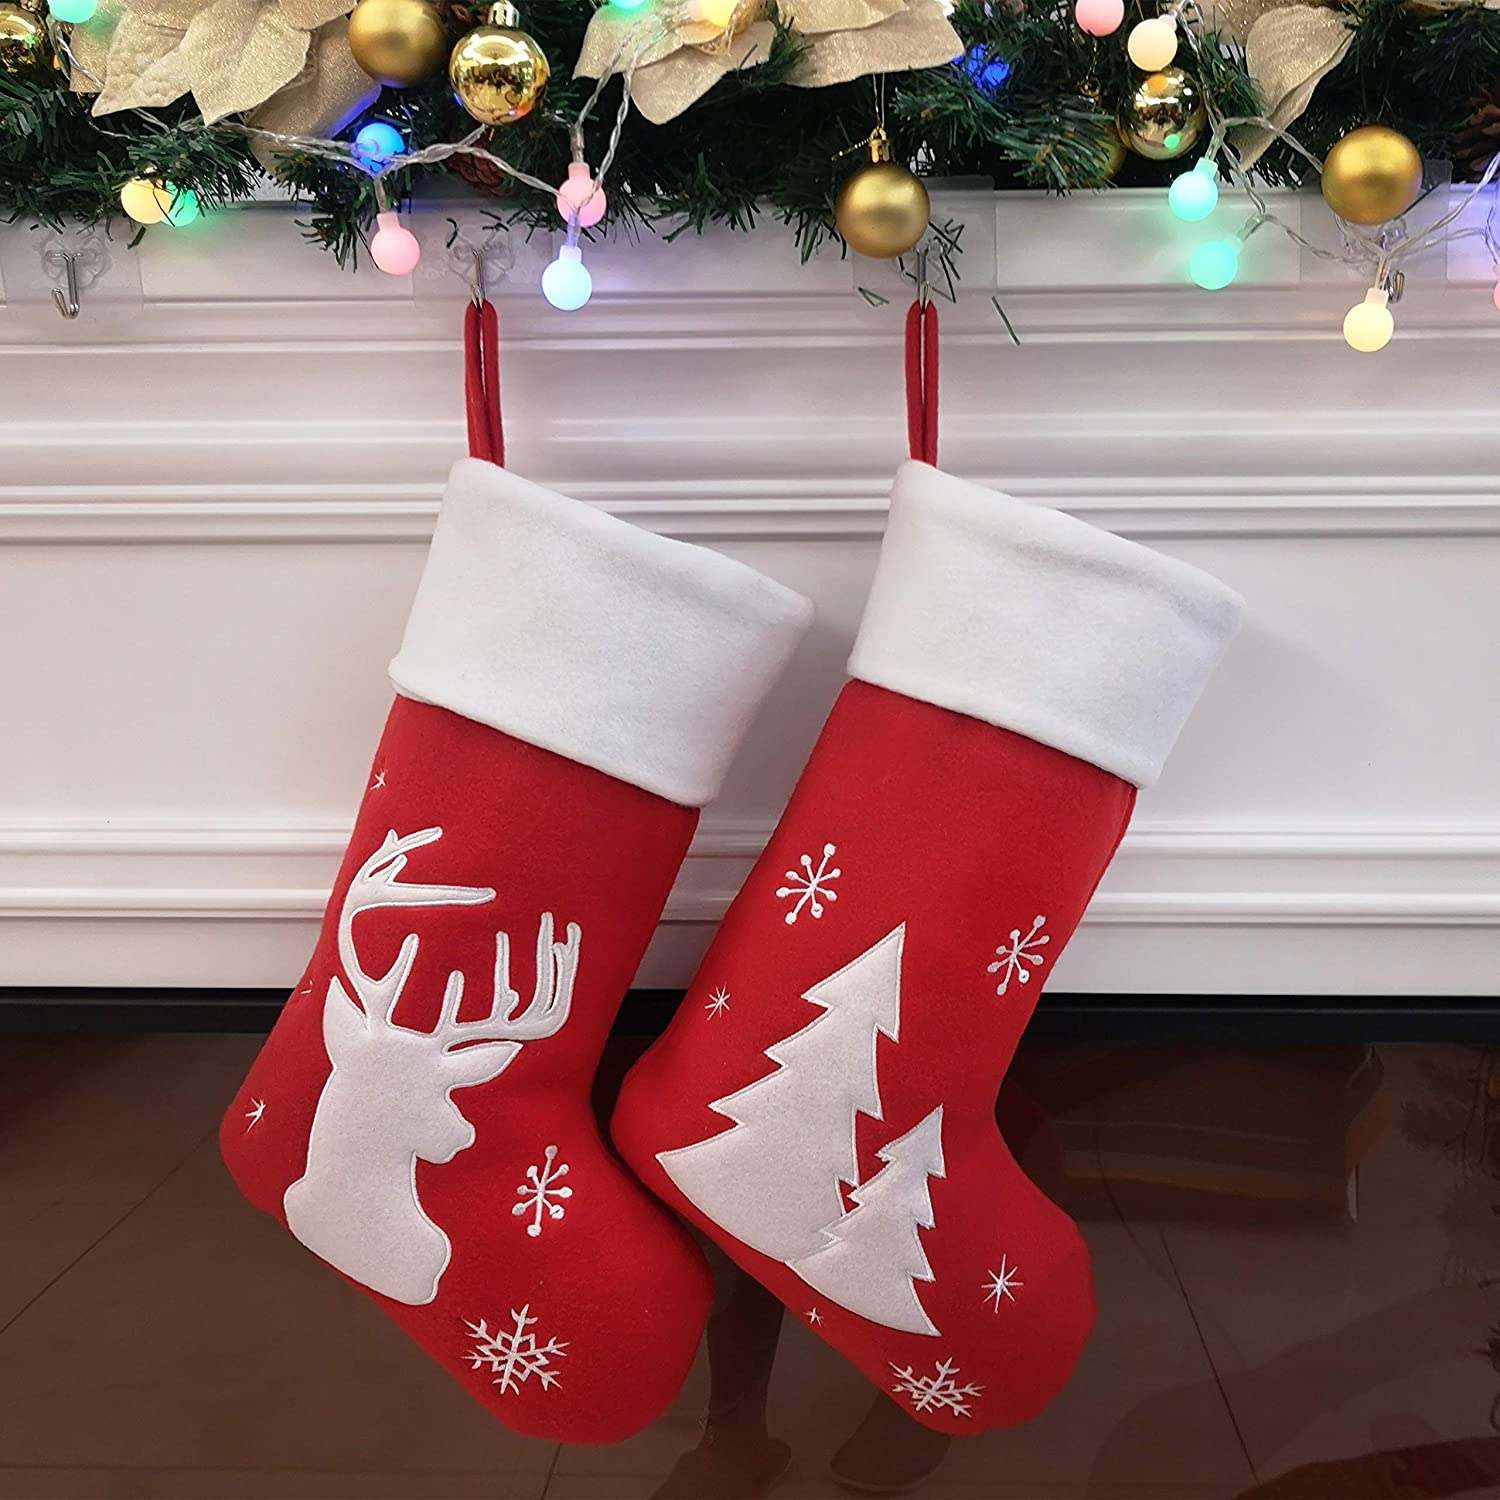 Now on sale Houwsbaby 2 Pcs Christmas Stockings Set Arlington Mall Thick X Holders Reindeer